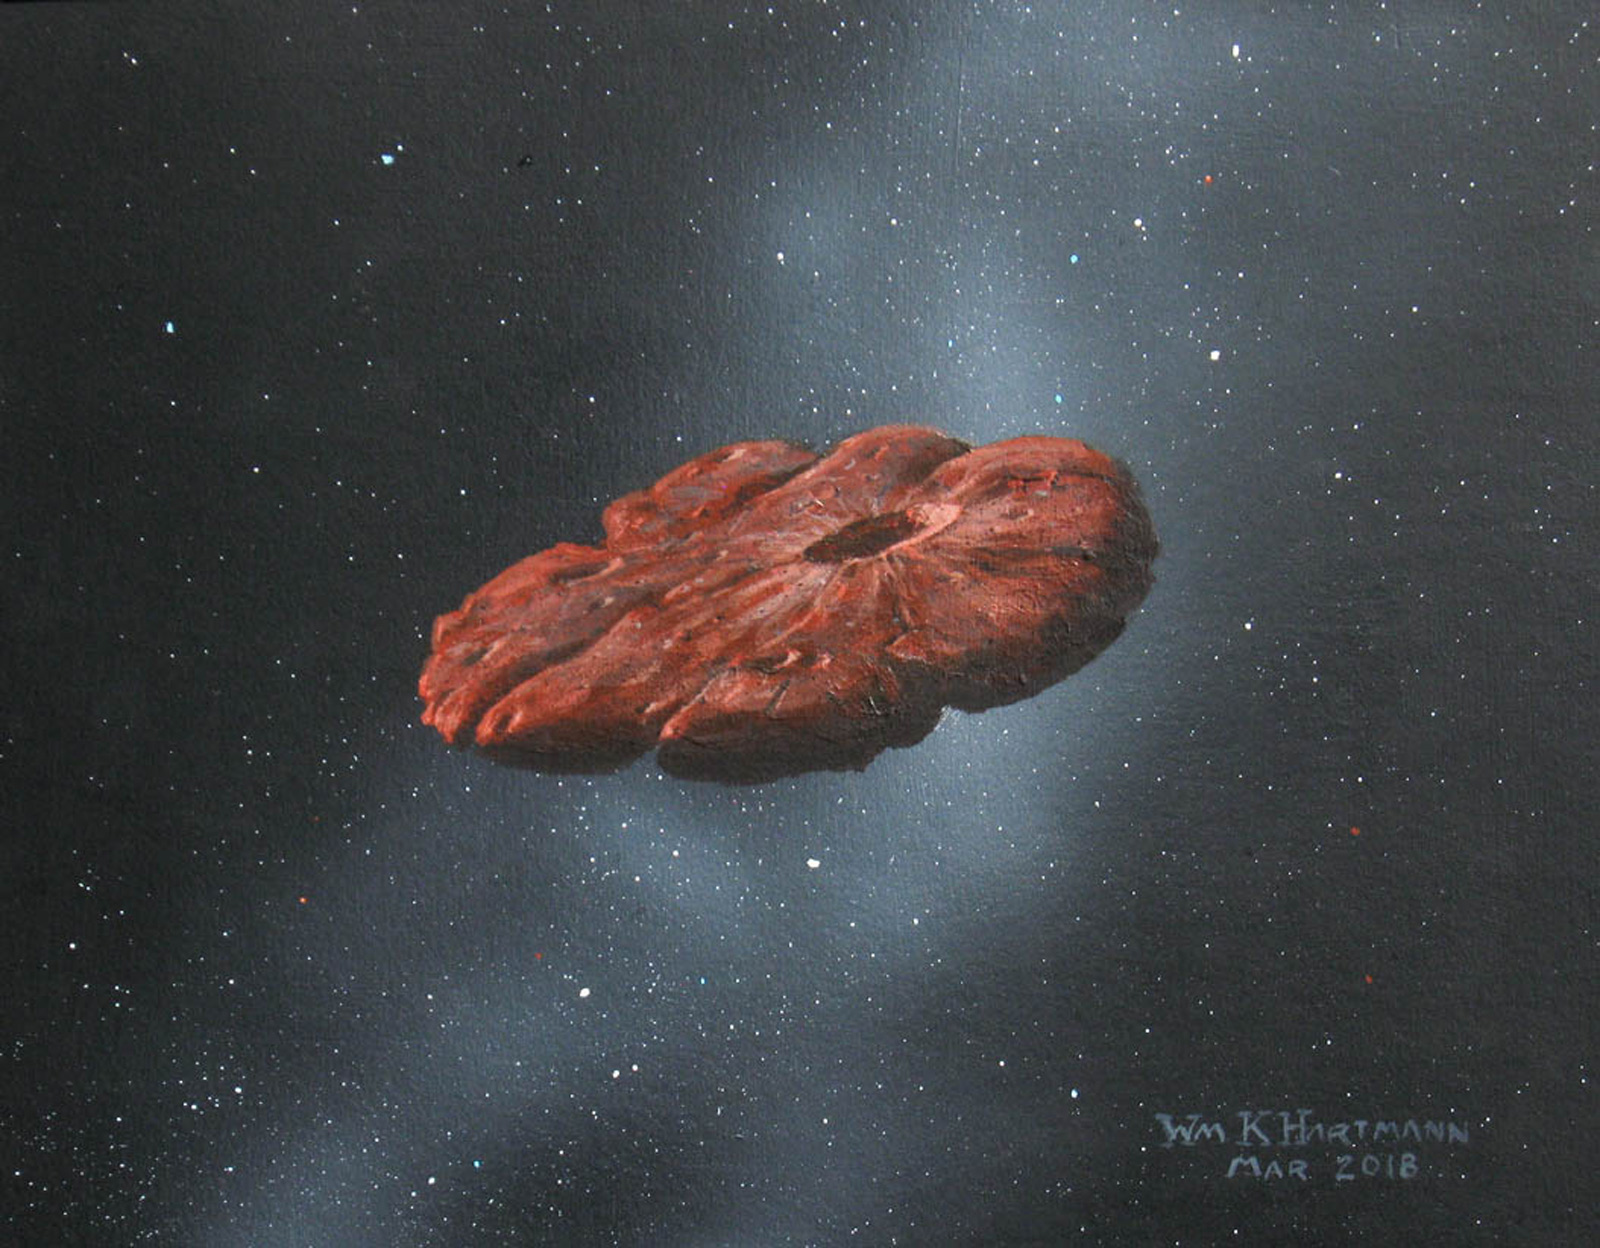 Interstellar object ʻOumuamua may be a fragment of Pluto-like planet